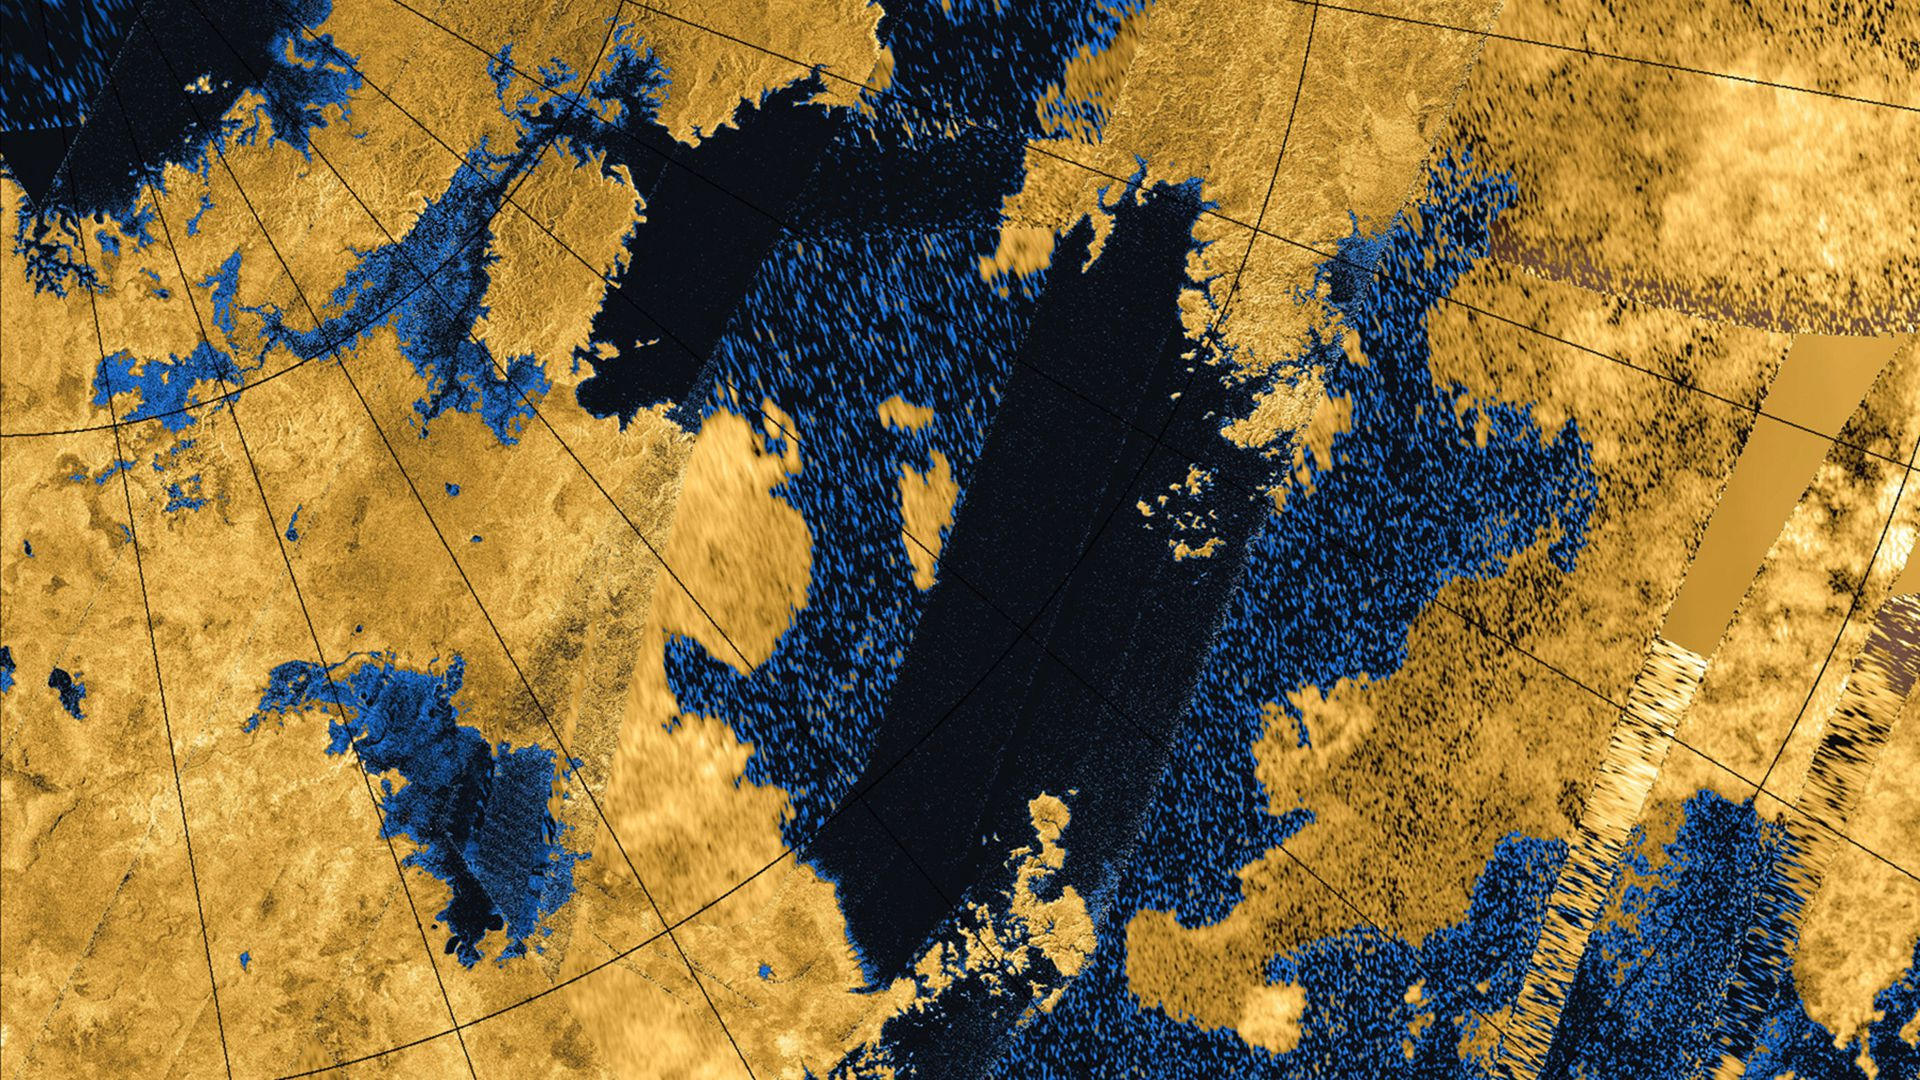 An image mosaic of Titan's northern hemisphere from NASA's Cassini mission.